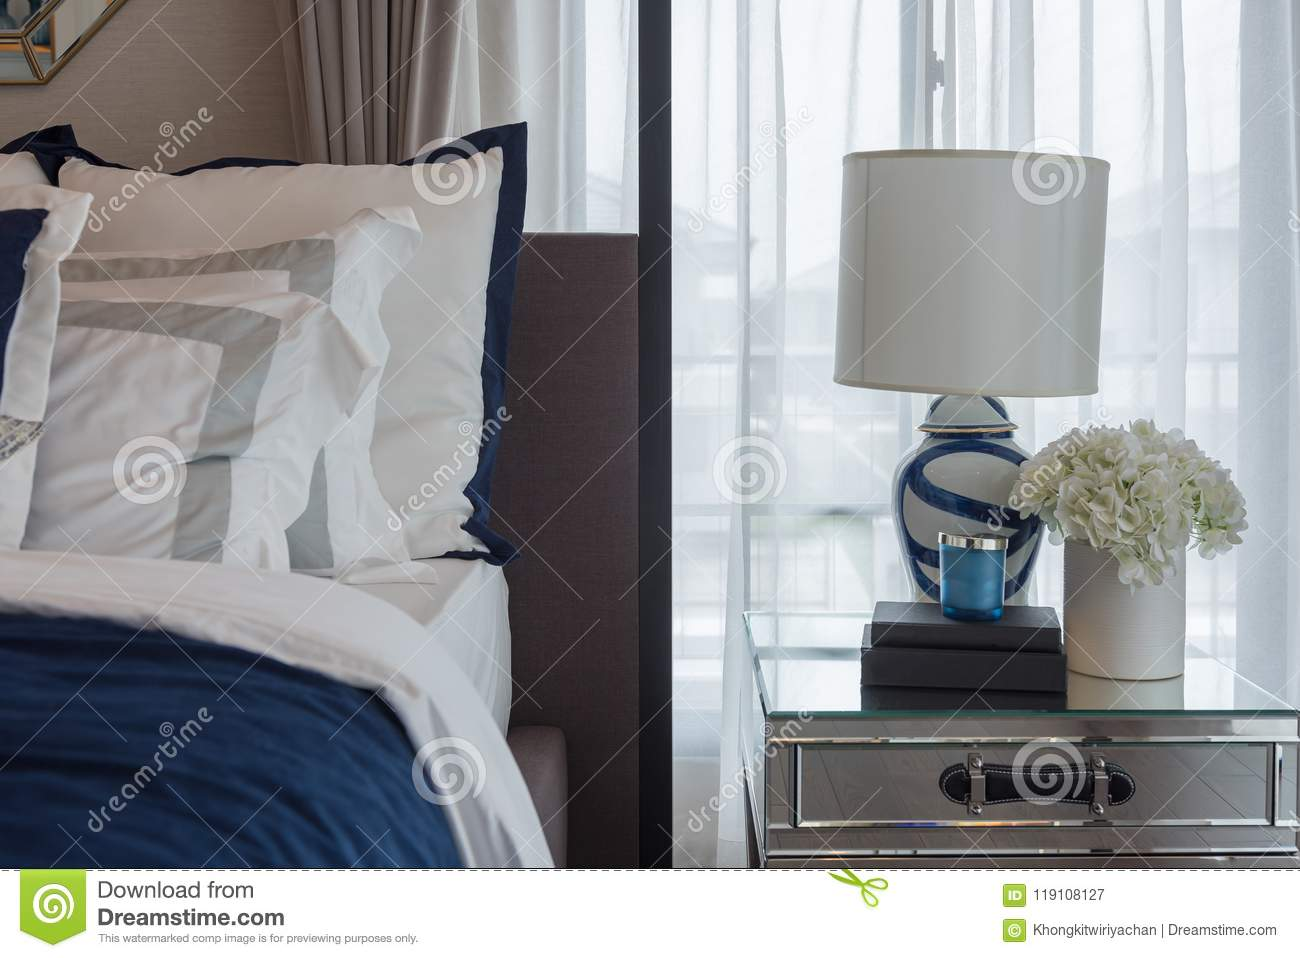 Download Luxury Bedroom In Indigo Blue Tone Stock Image   Image Of Hotel,  Design: